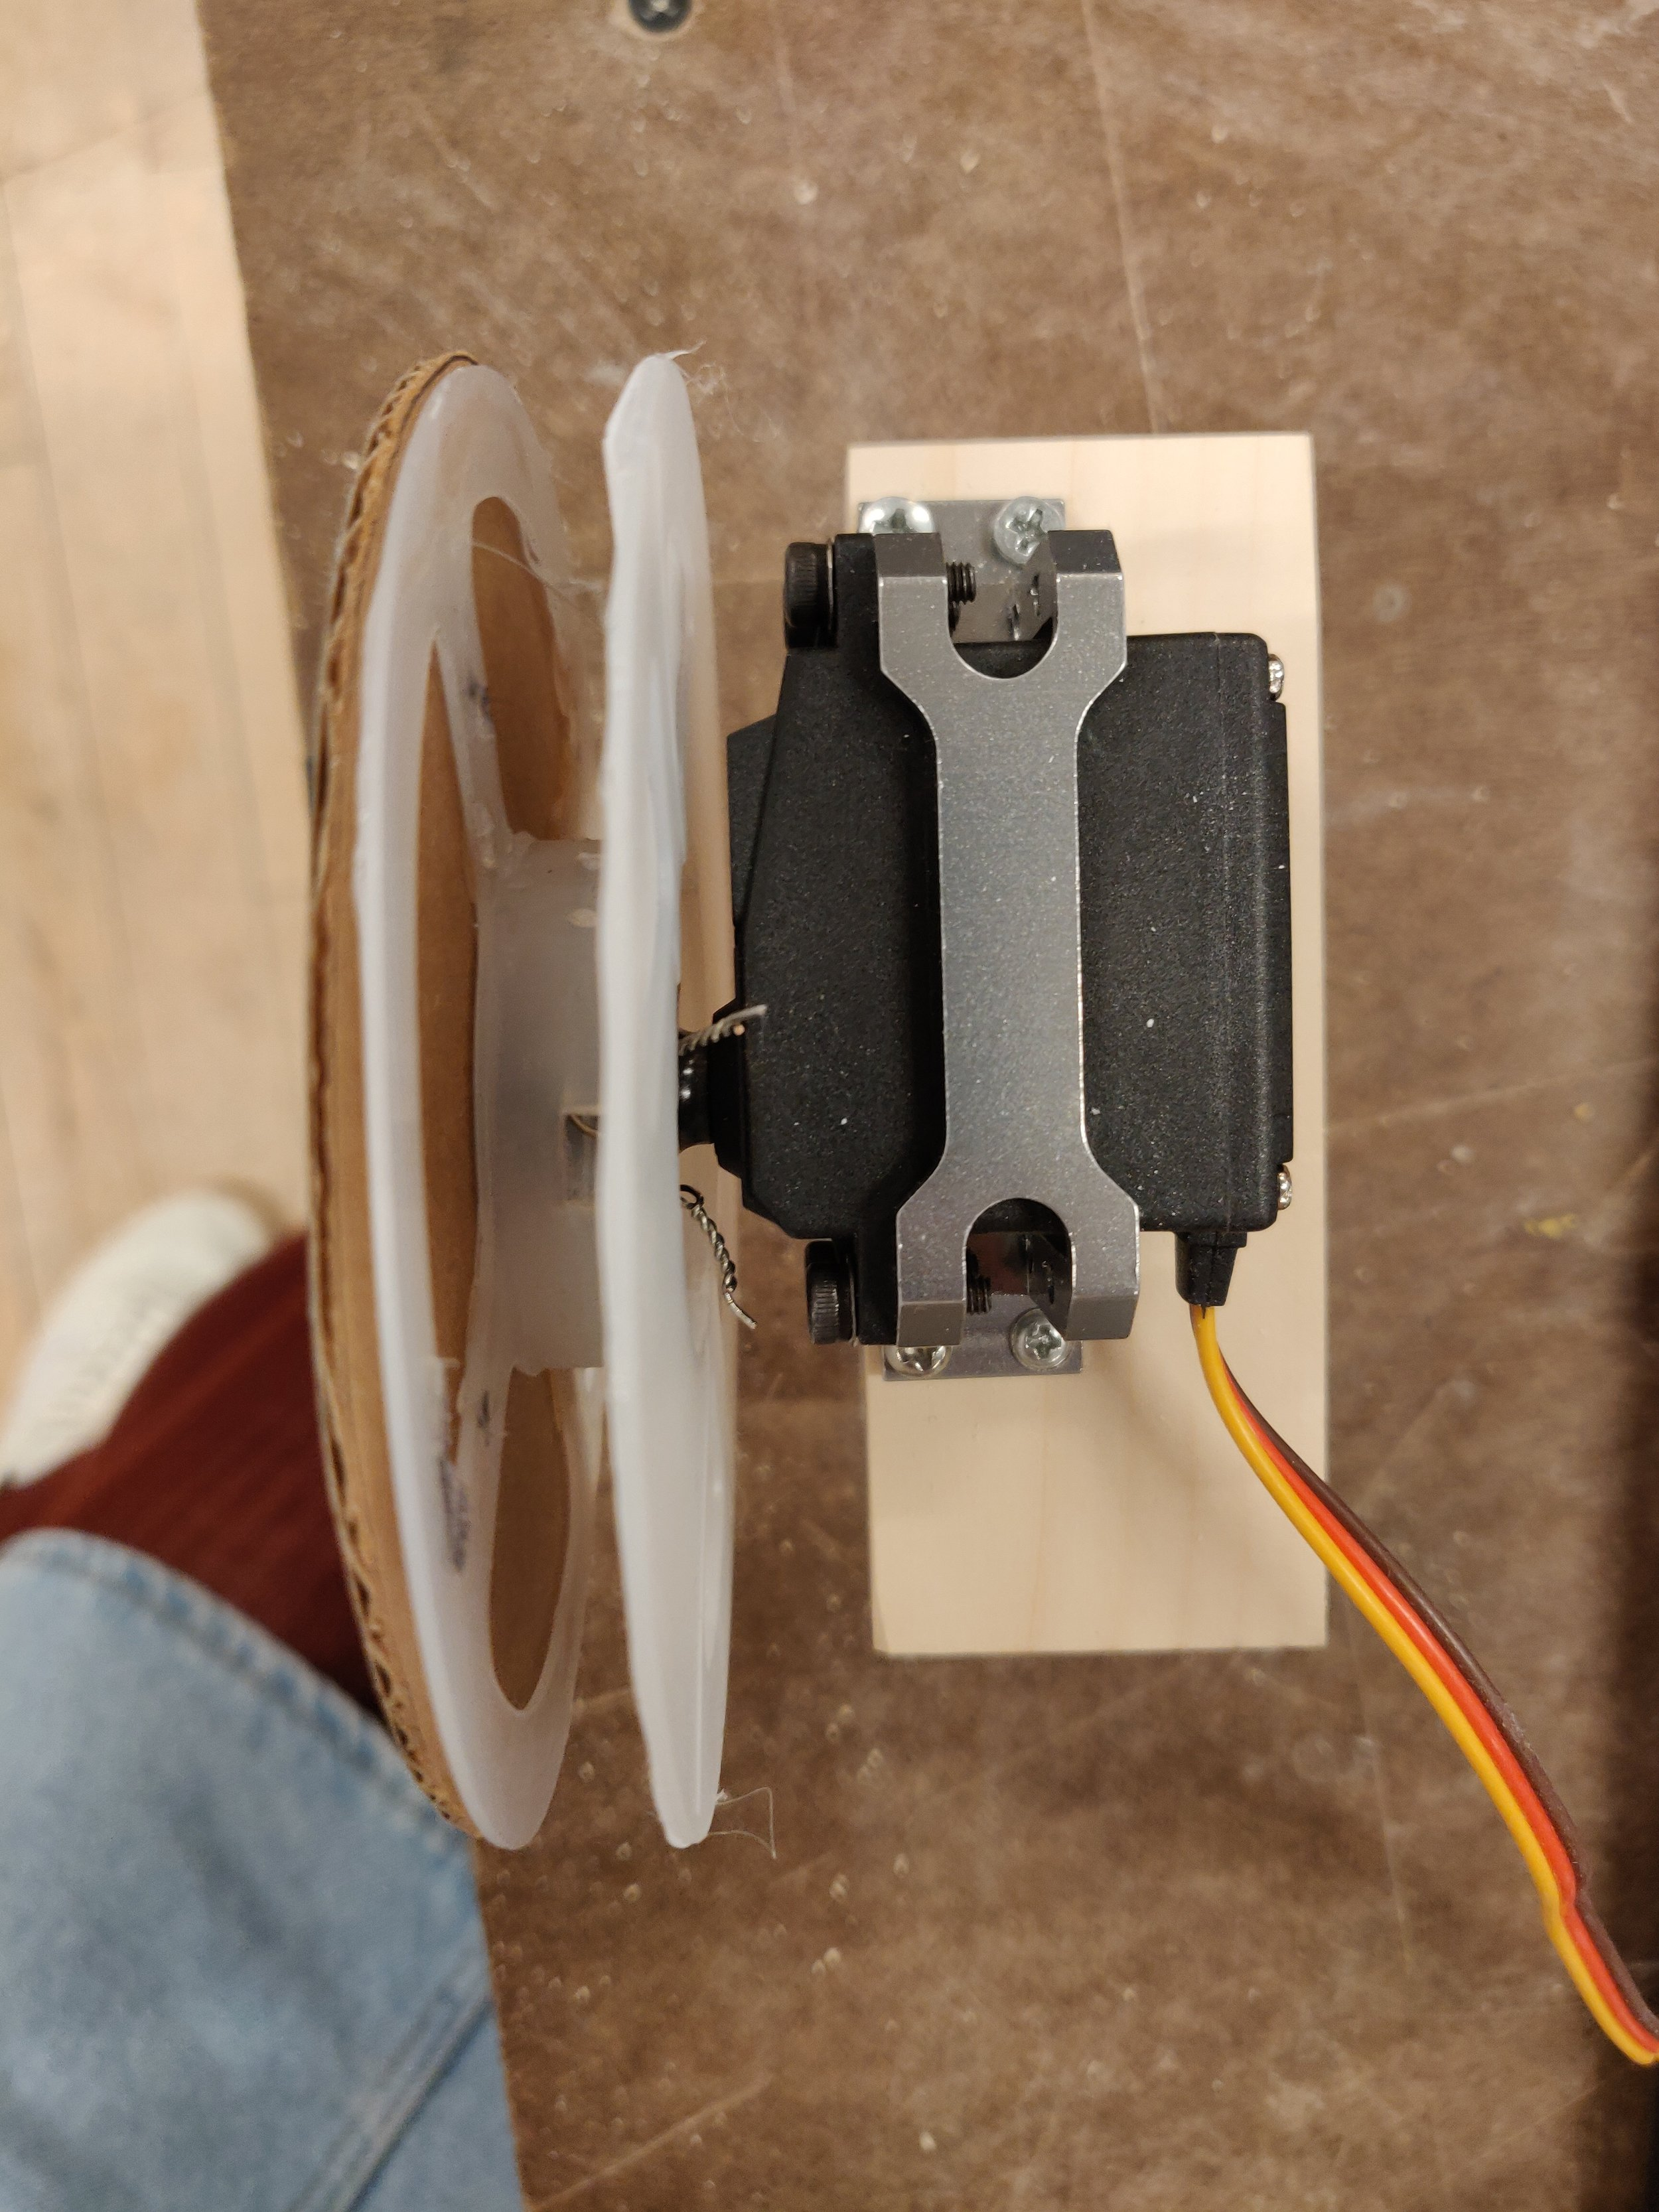 Top view of the mounted servo